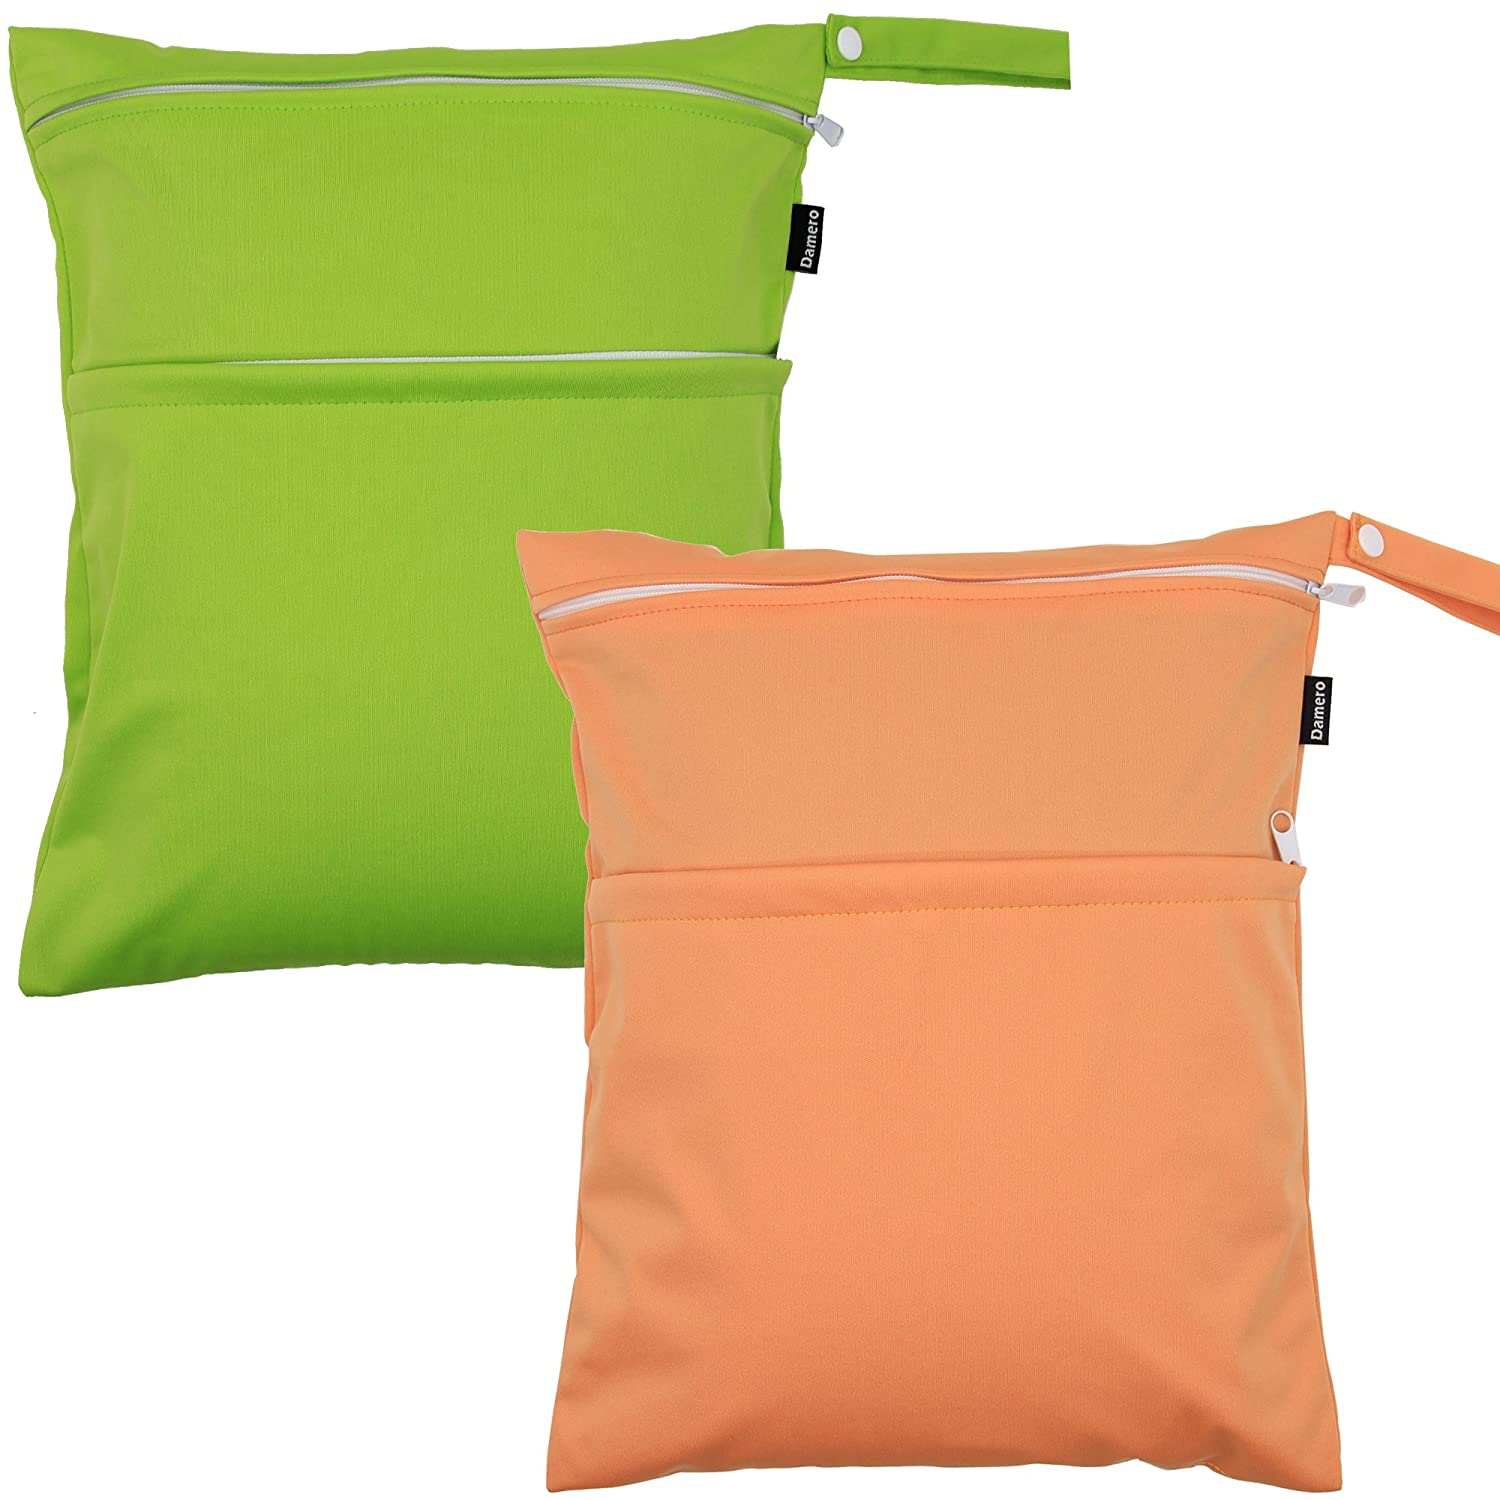 Damero 2pcs Pack Cute Travel Baby Wet and Dry Cloth Diaper Organizer Bag(Medium, Green+Orange)